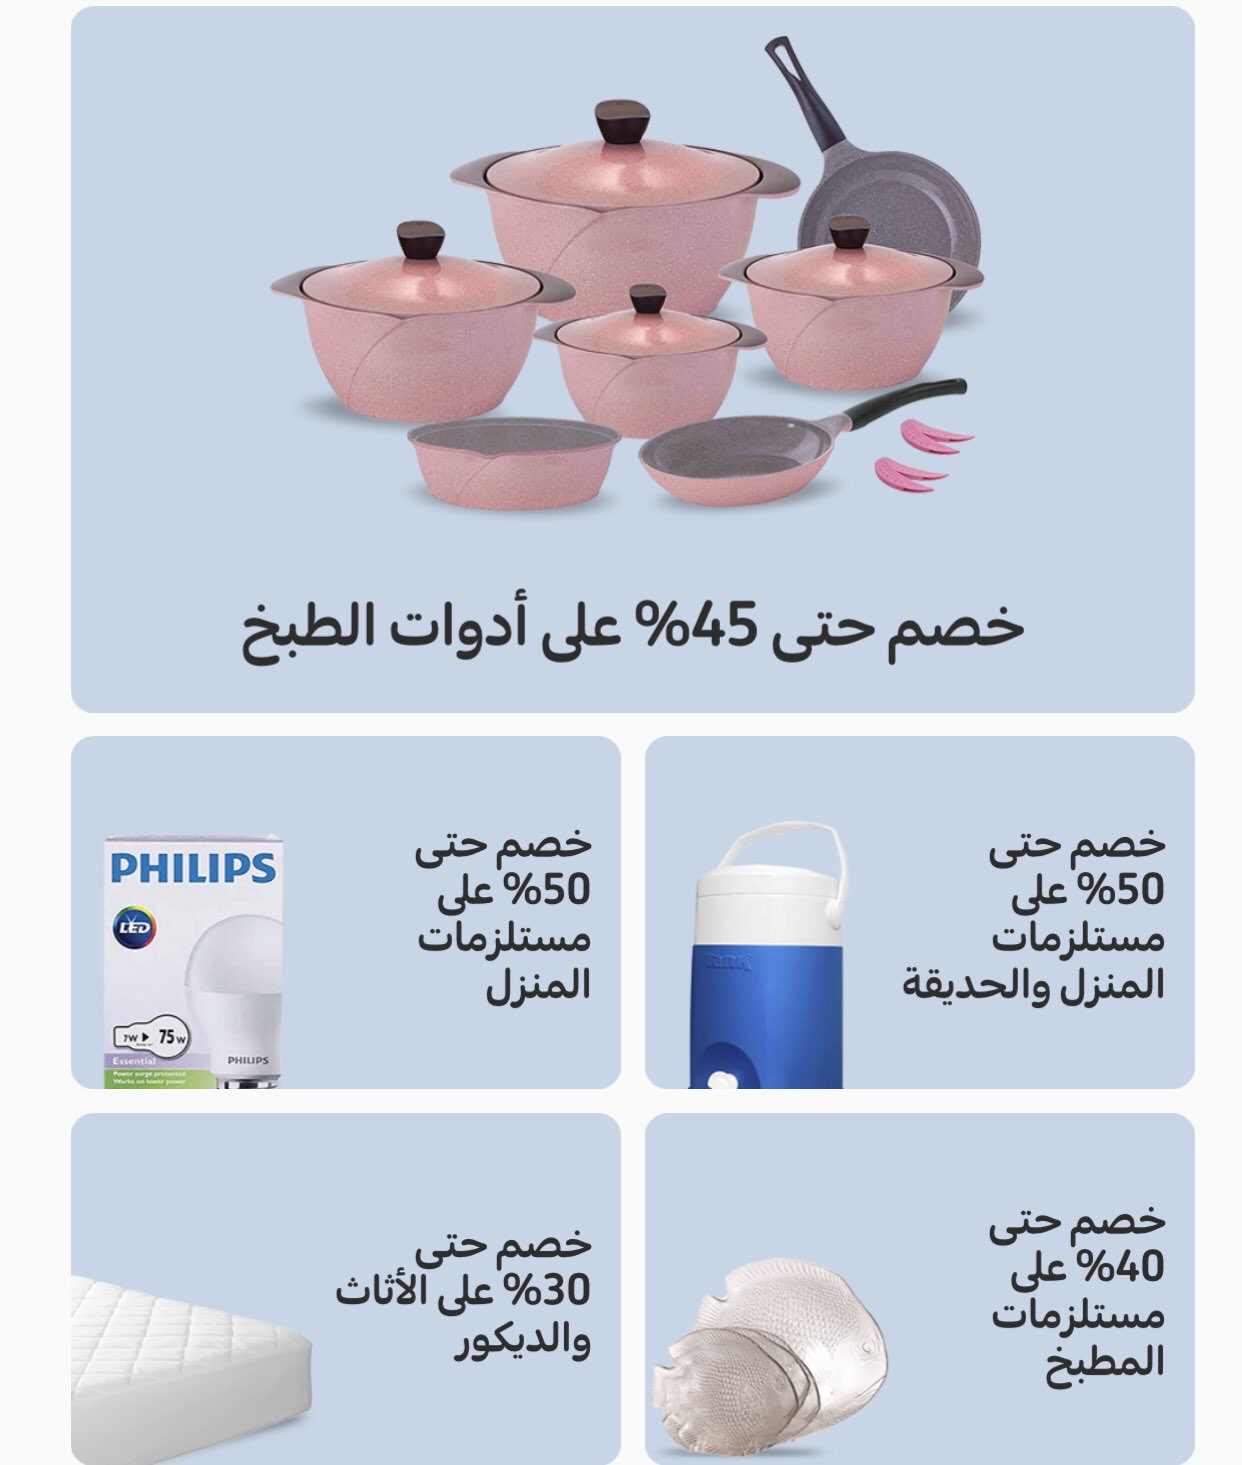 New Carrefour Egypt introduces 50 EGP discount codes on your first order 12